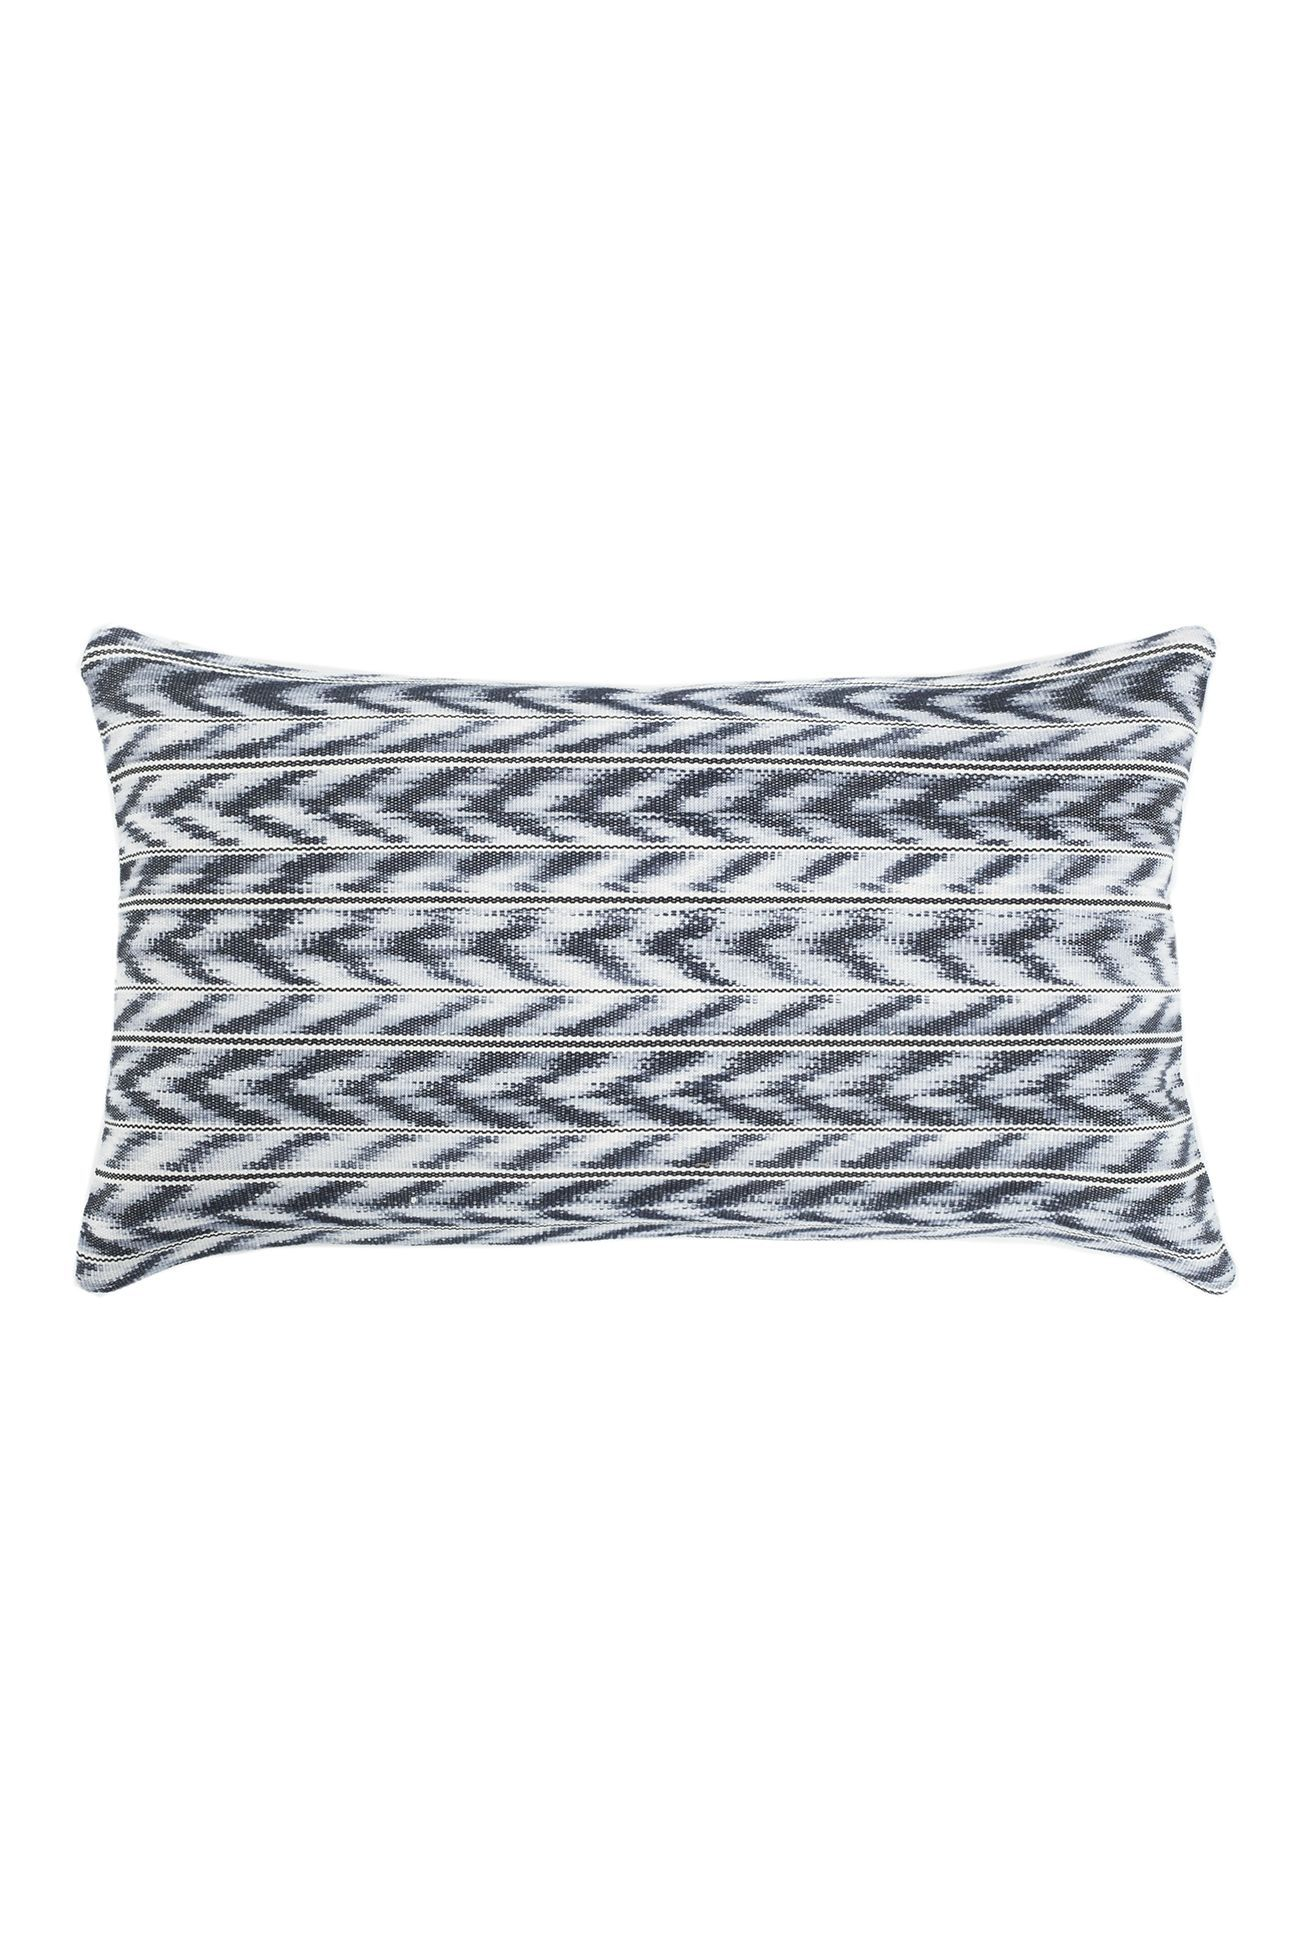 Archive New York Toto Ikat Pillow, grey   Products   Pinterest ...